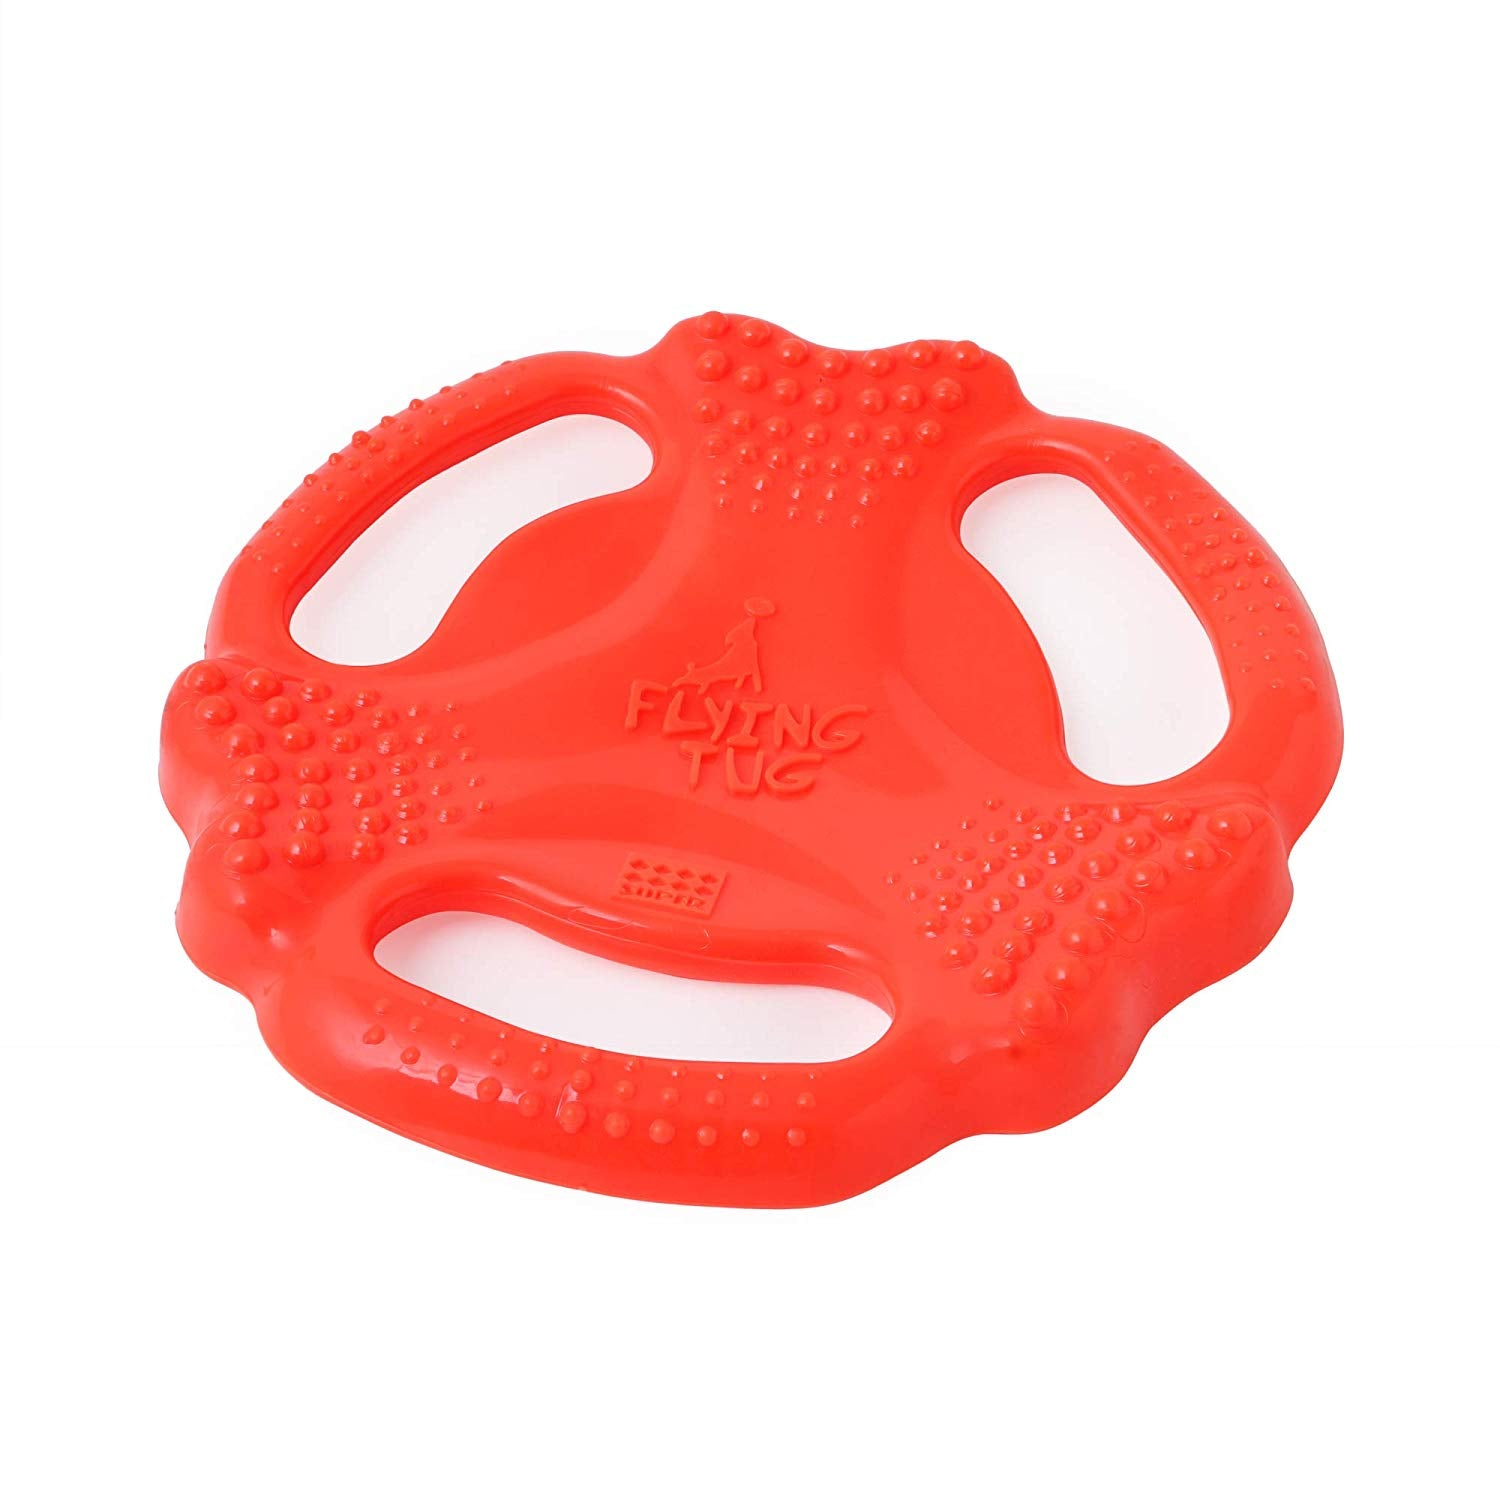 Super Dog Orange Colored Flying Tug Dog Toy - pet-club-india